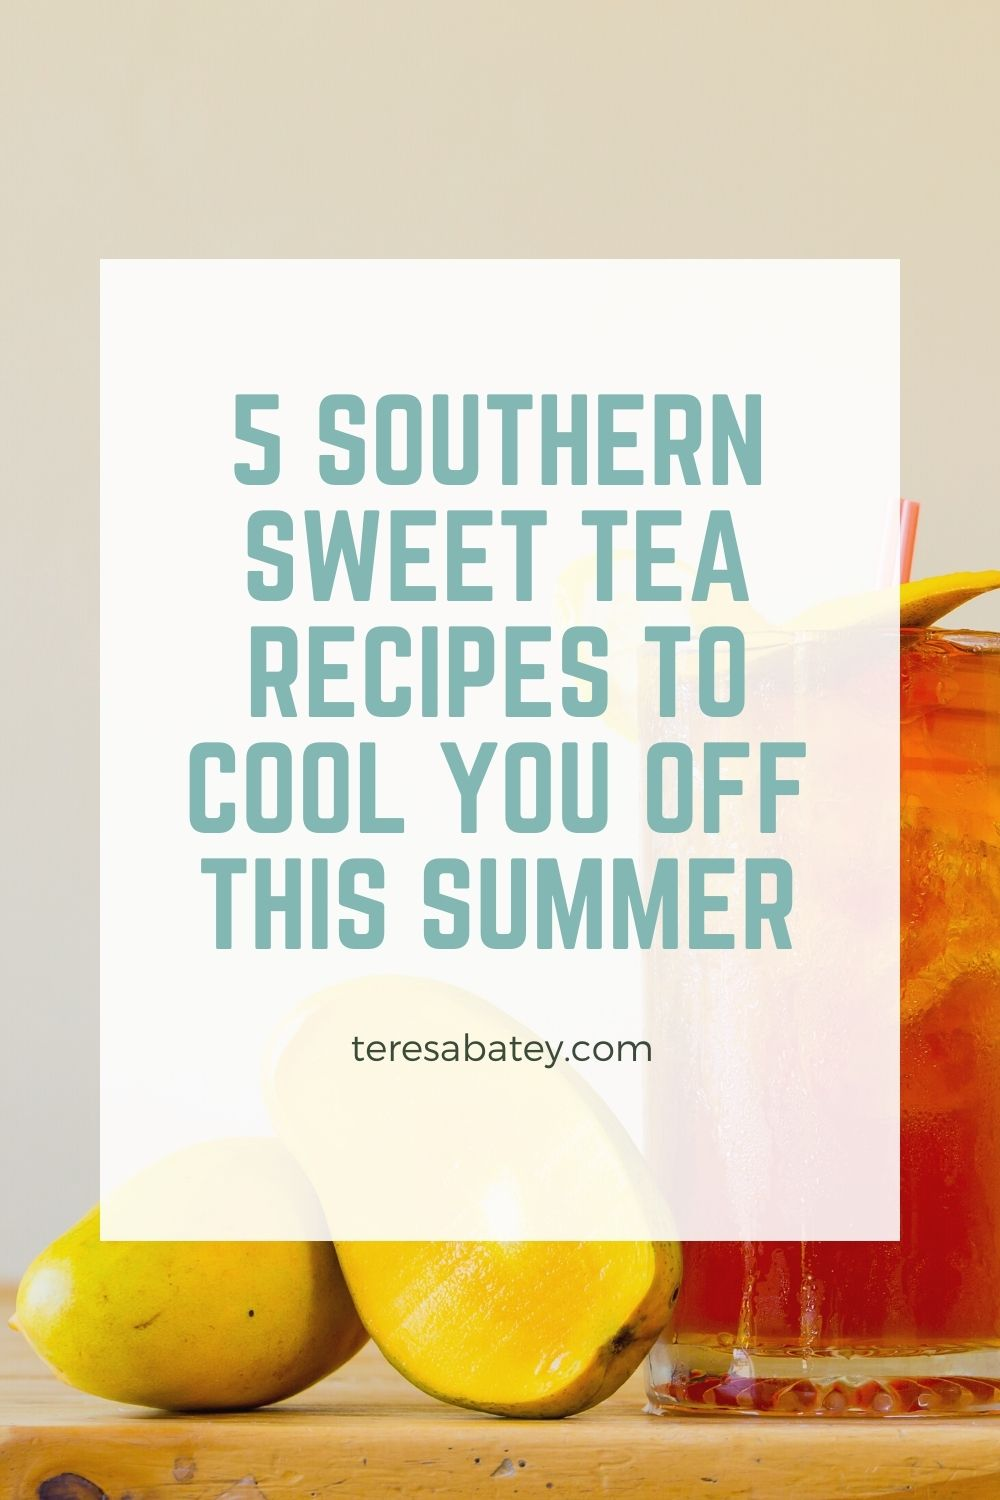 5 Southern Sweet Tea Recipes To Cool You Off This Summer